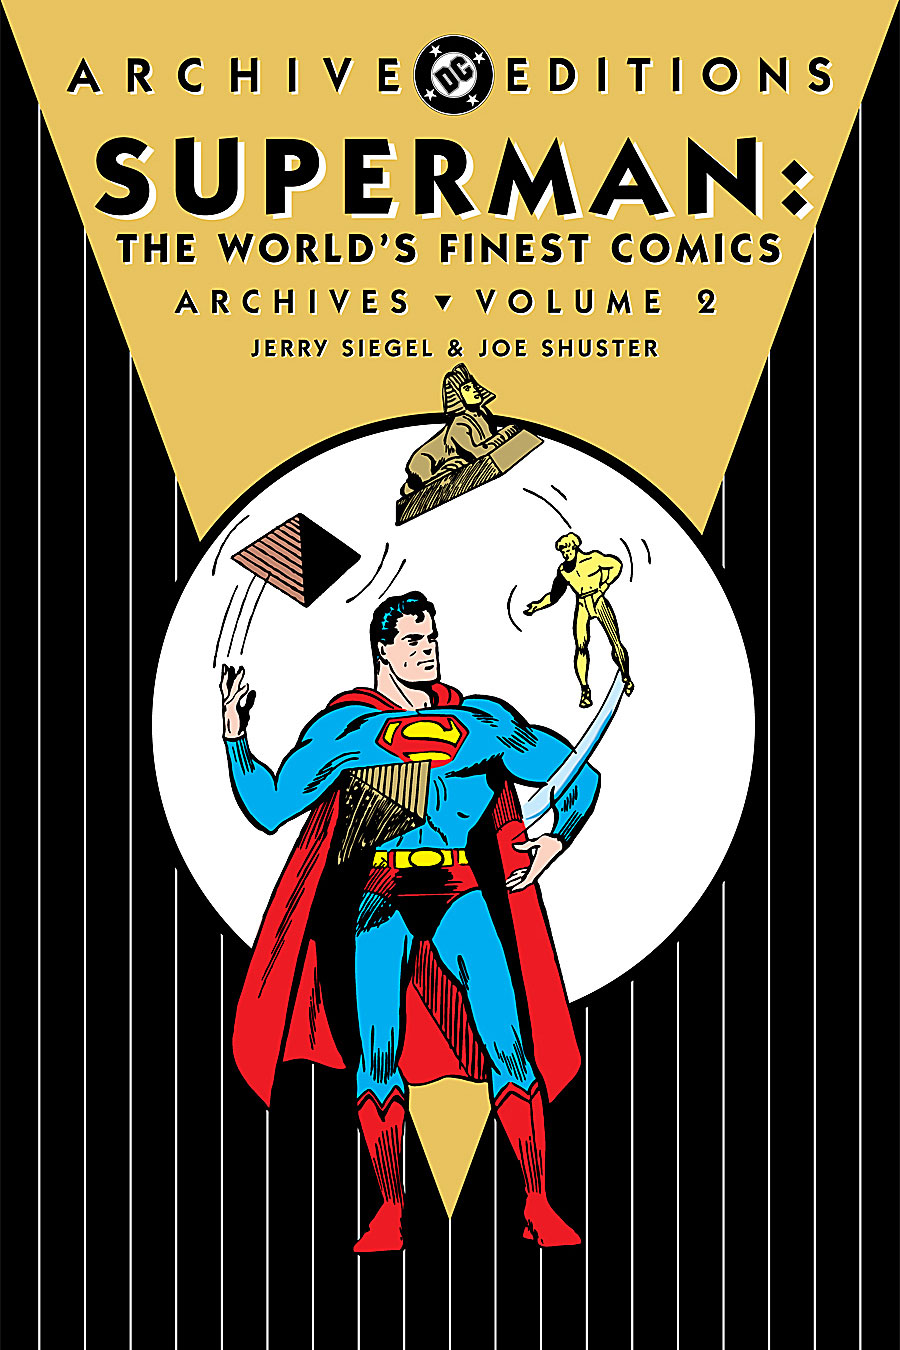 Superman: The World's Finest Comics Archives Vol. 2 (Collected)